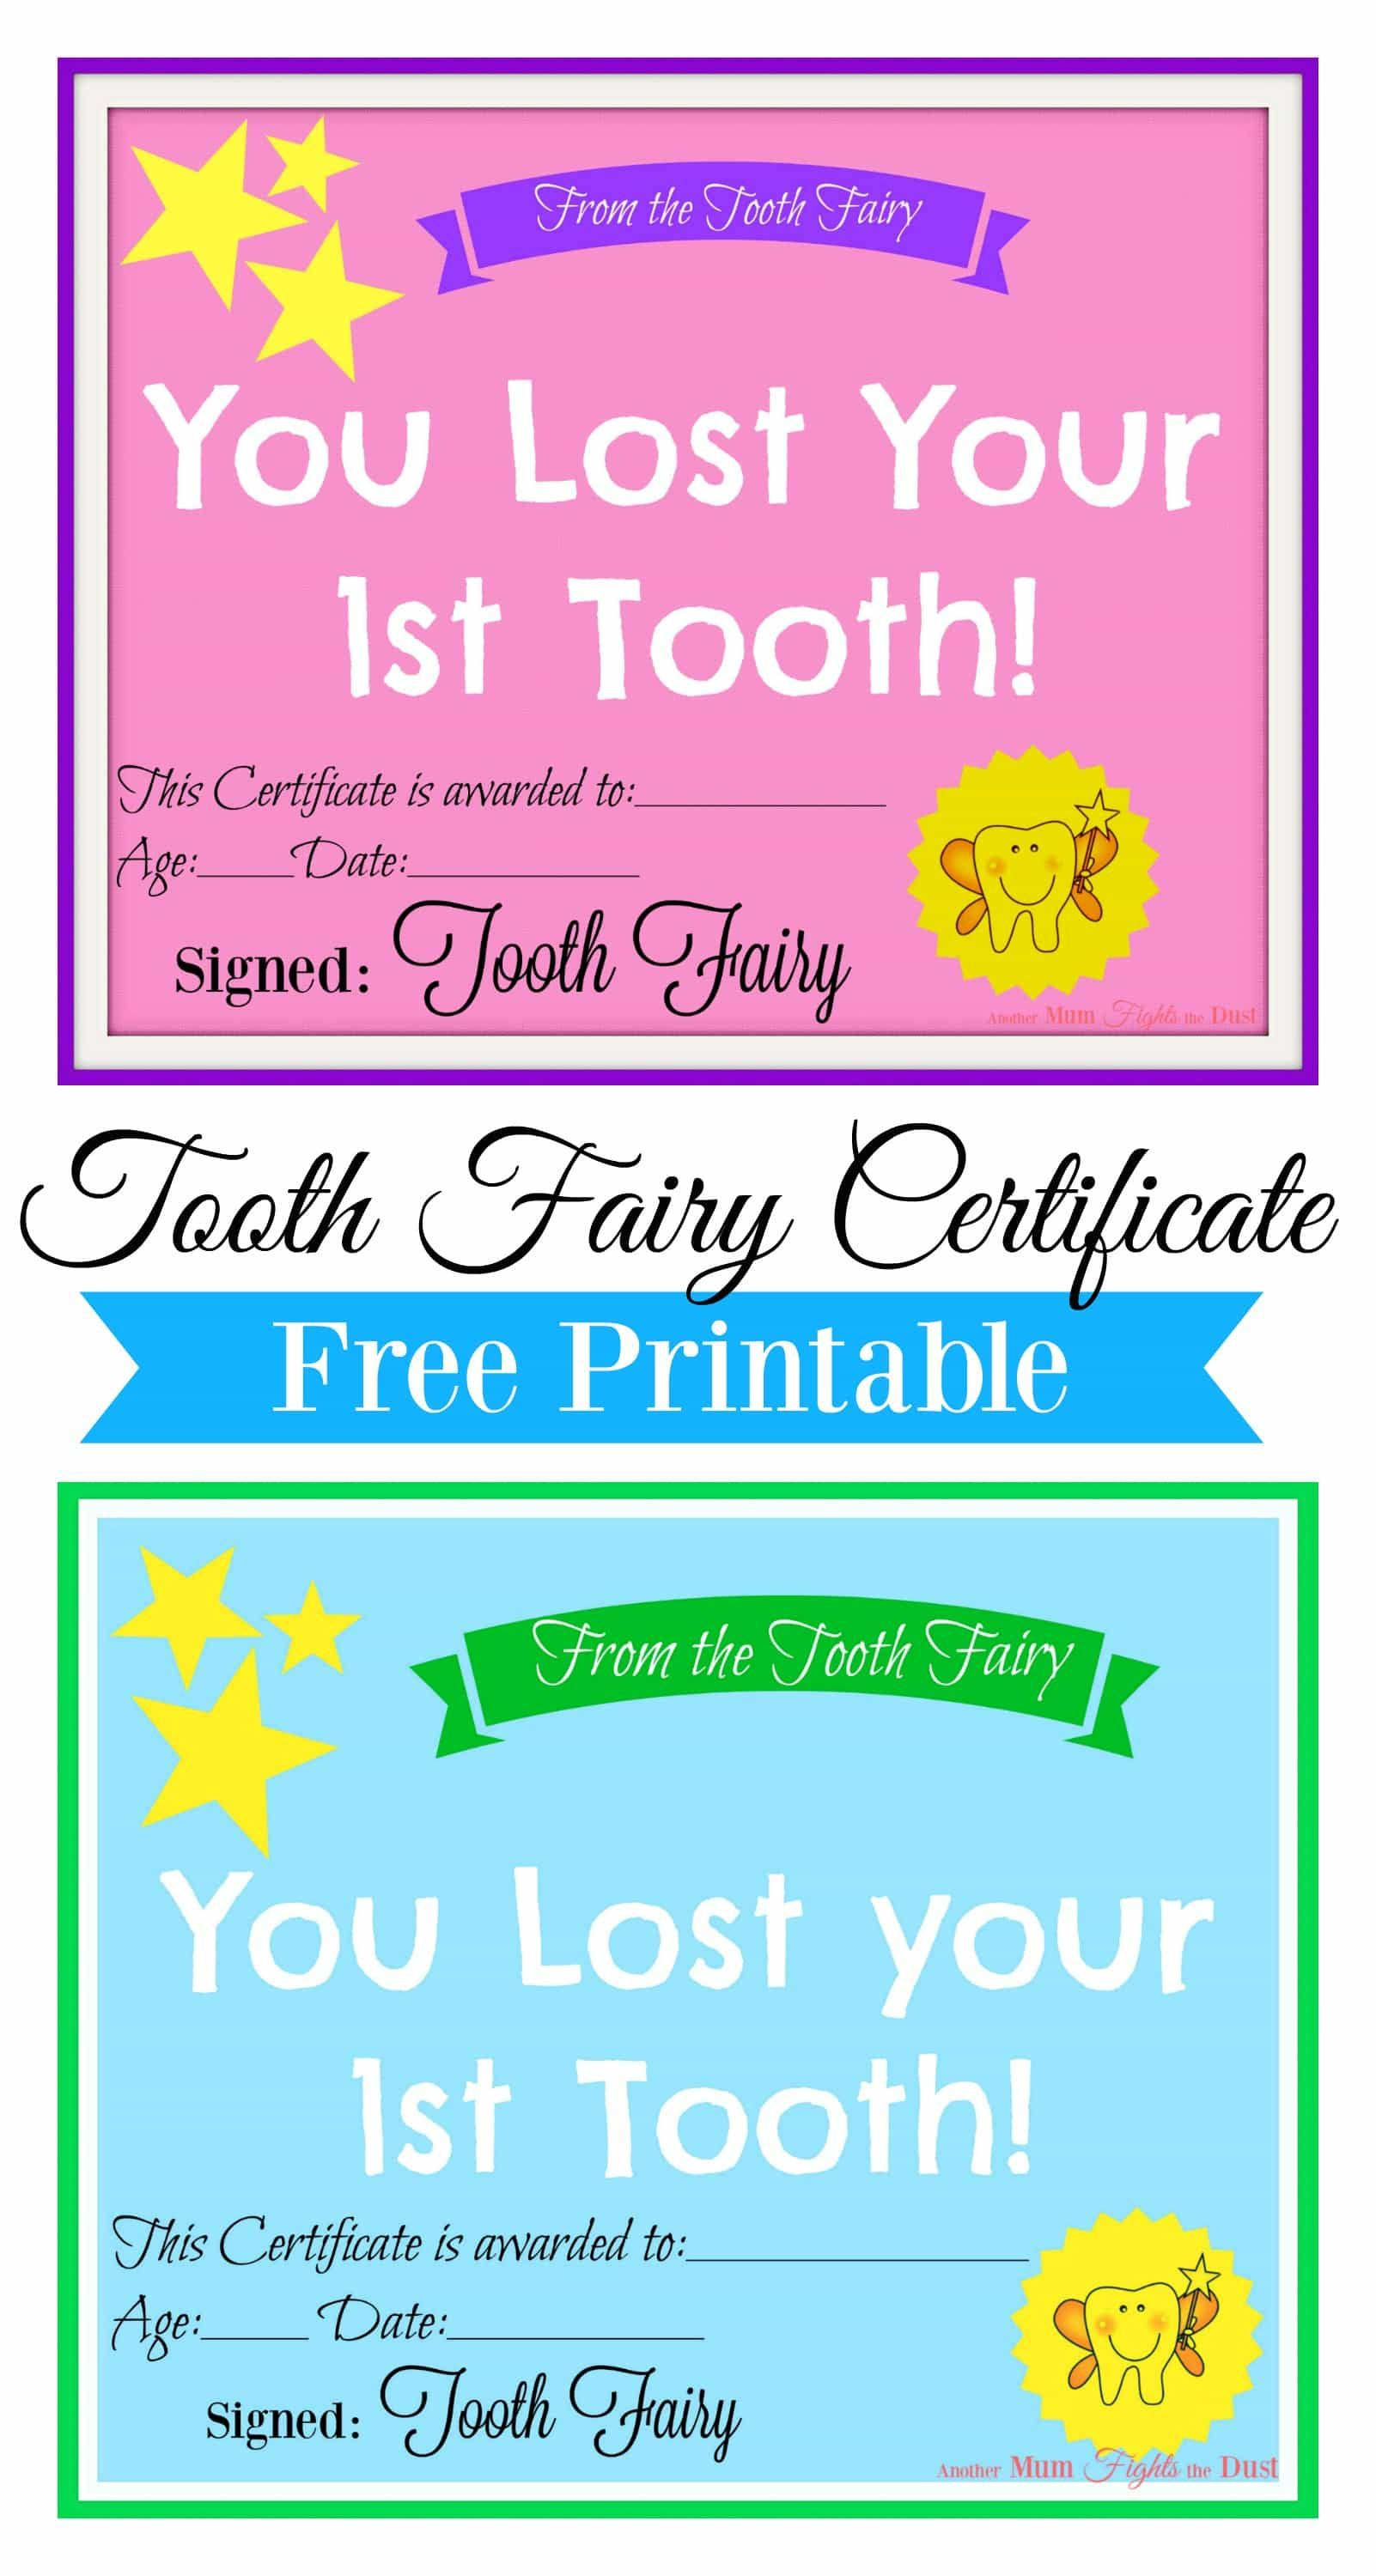 photograph about Free Printable Tooth Fairy Letters named Free of charge Printable Teeth Fairy Certification Teeth Fairy Strategies